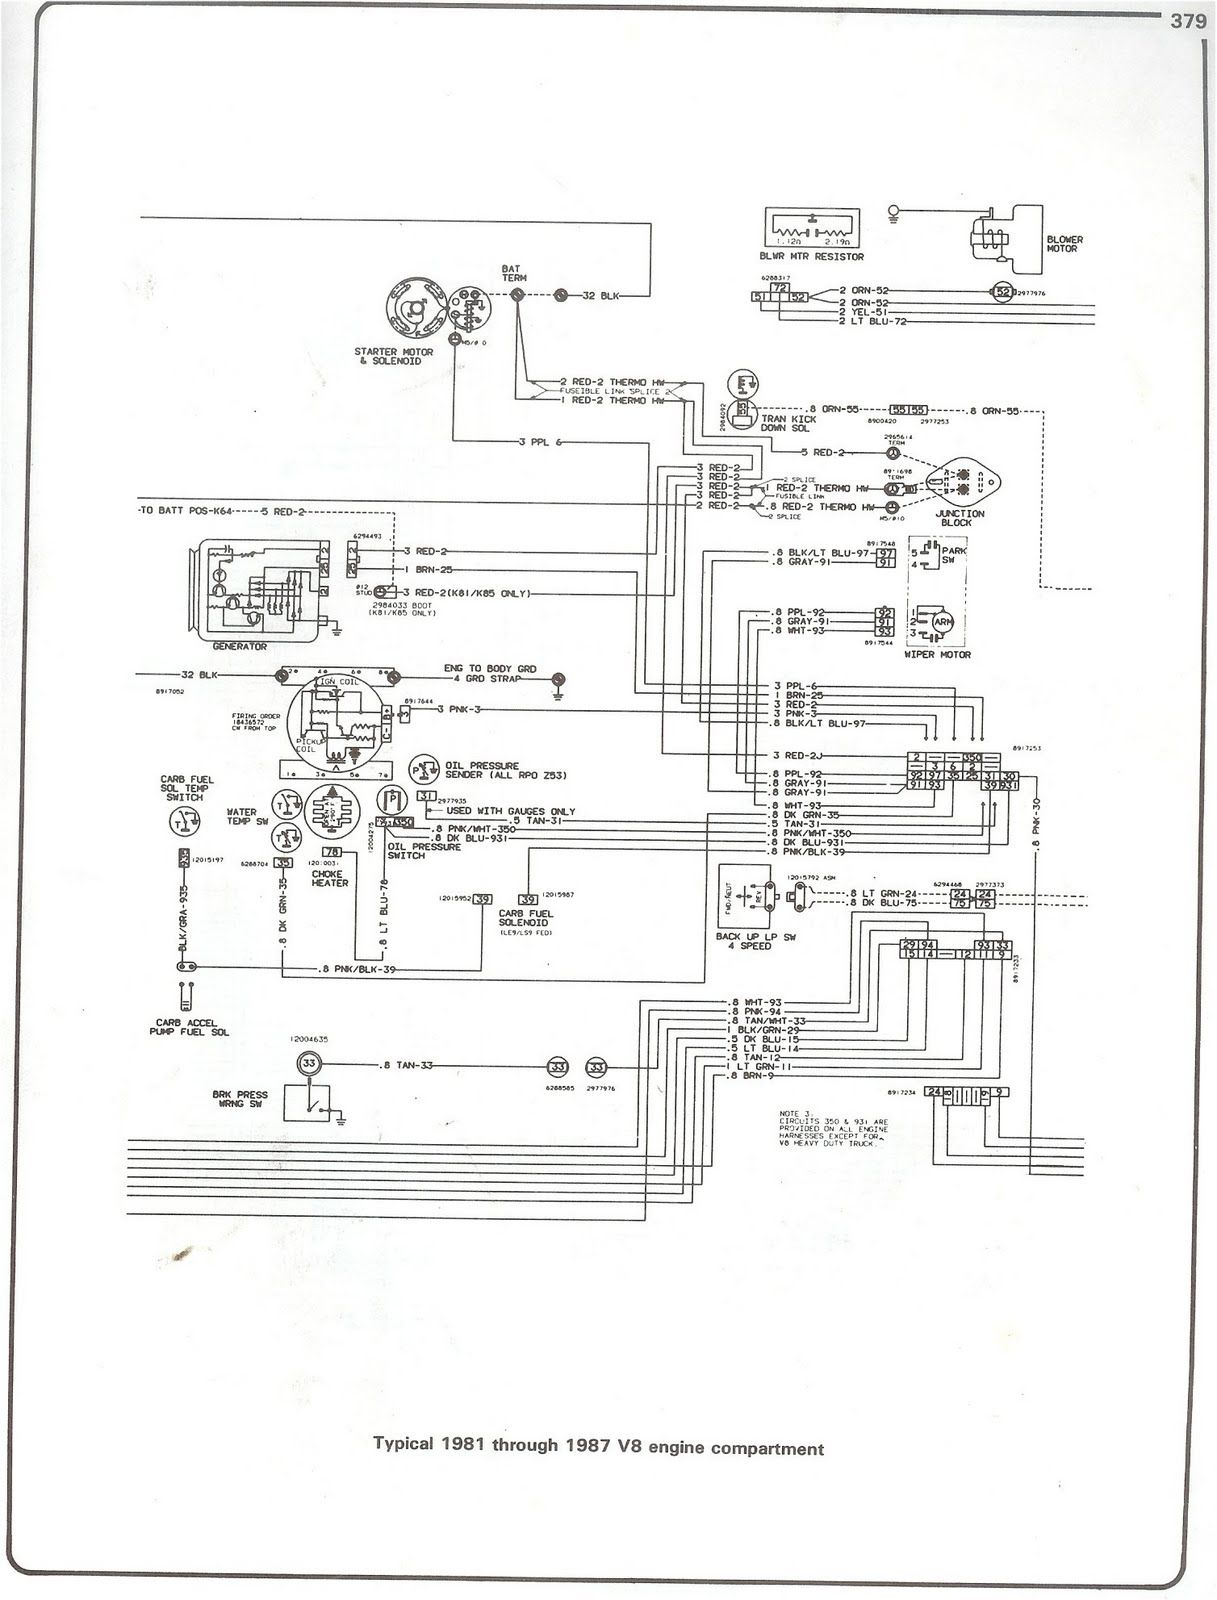 hight resolution of this is engine compartment wiring diagram for 1981 trough 1987 3 4 liter gm engine compartment diagram